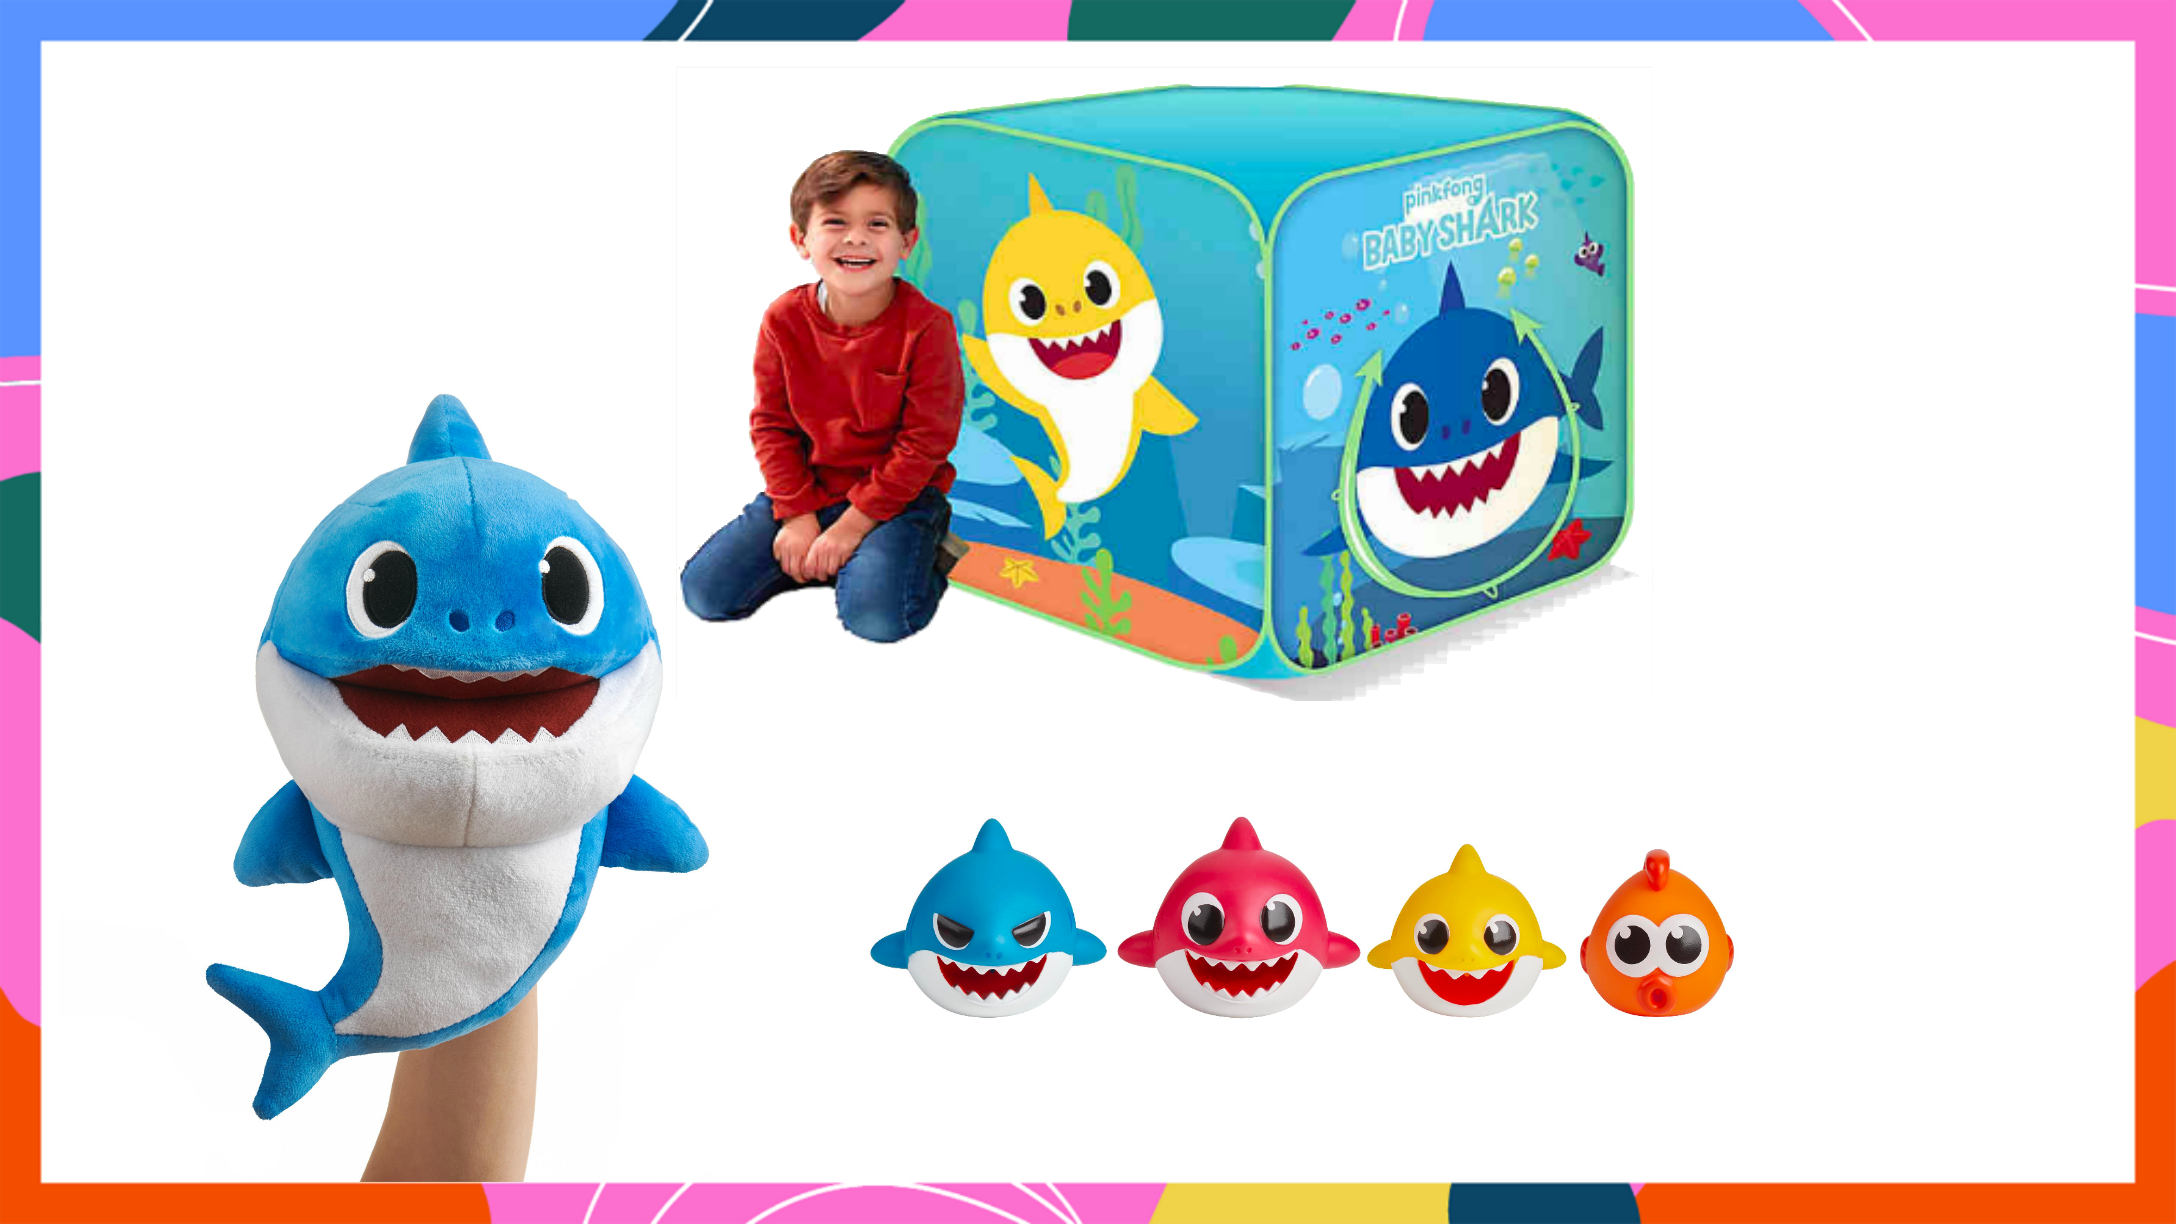 Pycod Bath Squirt Toy Children Bathing Water Toys Shark Baby Squeezing Soft Plastic